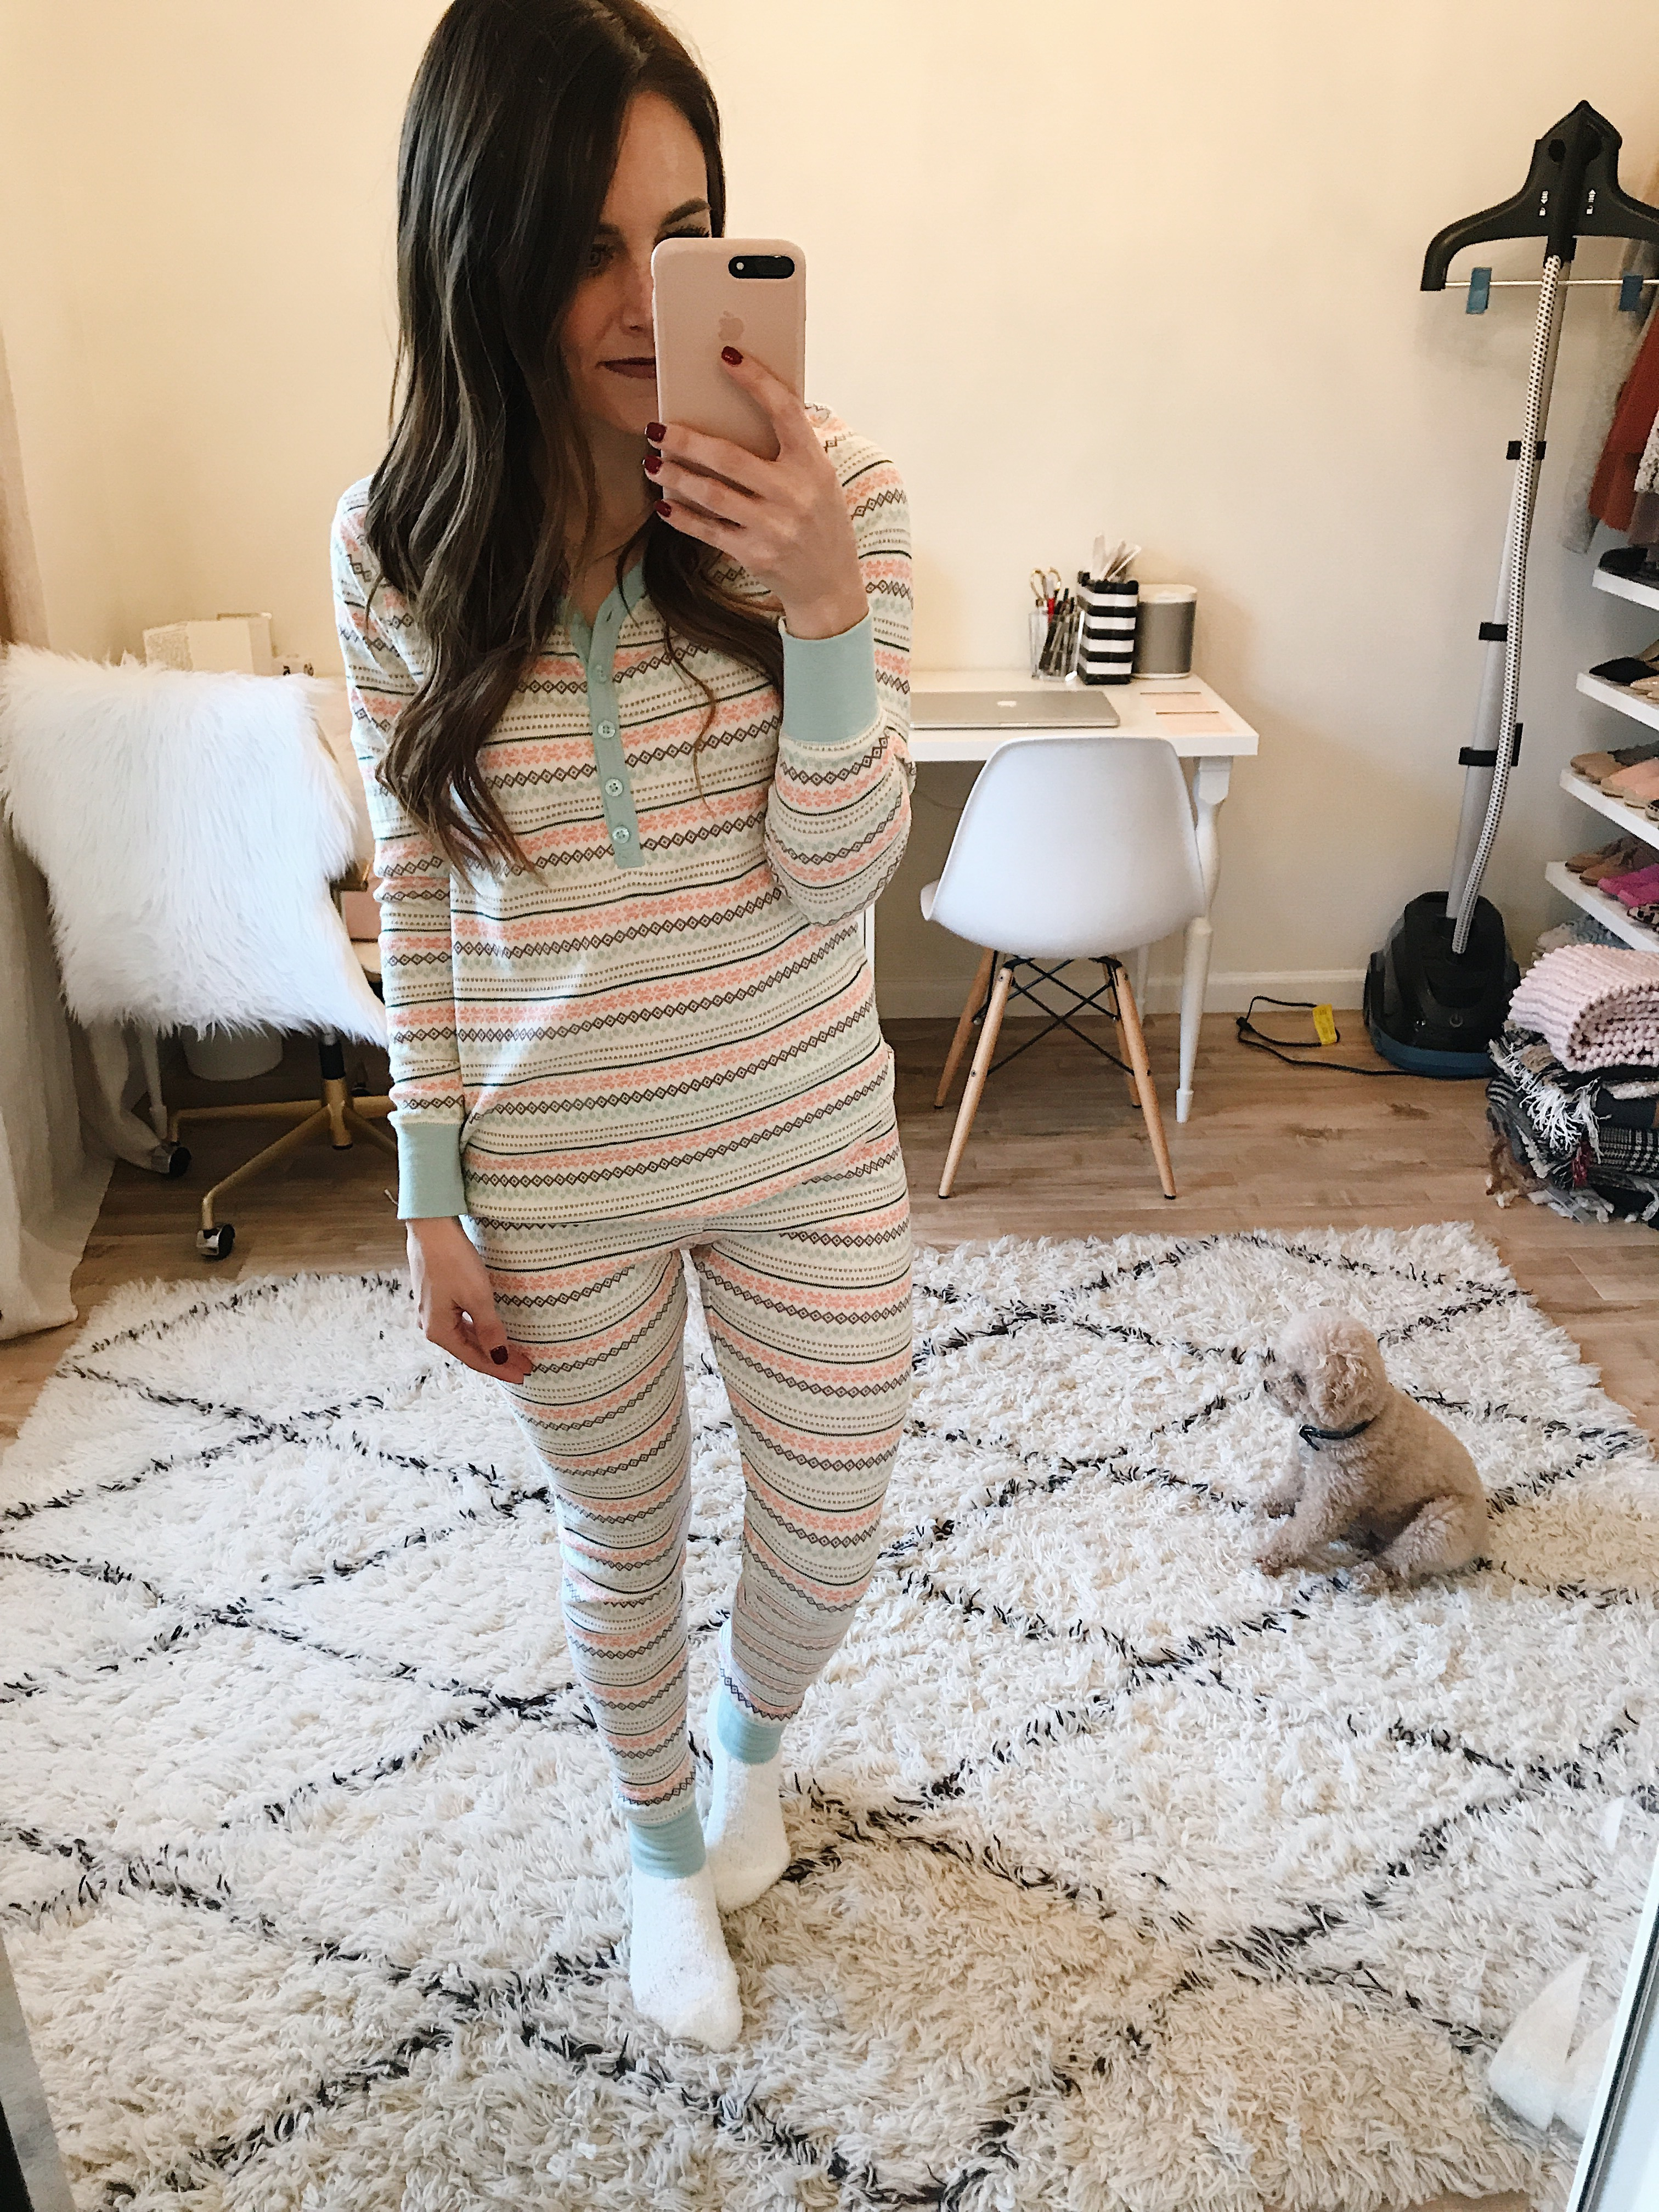 Style blogger Daryl-Ann Denner shares the best christmas pajamas 2017 and shares options to give as gifts